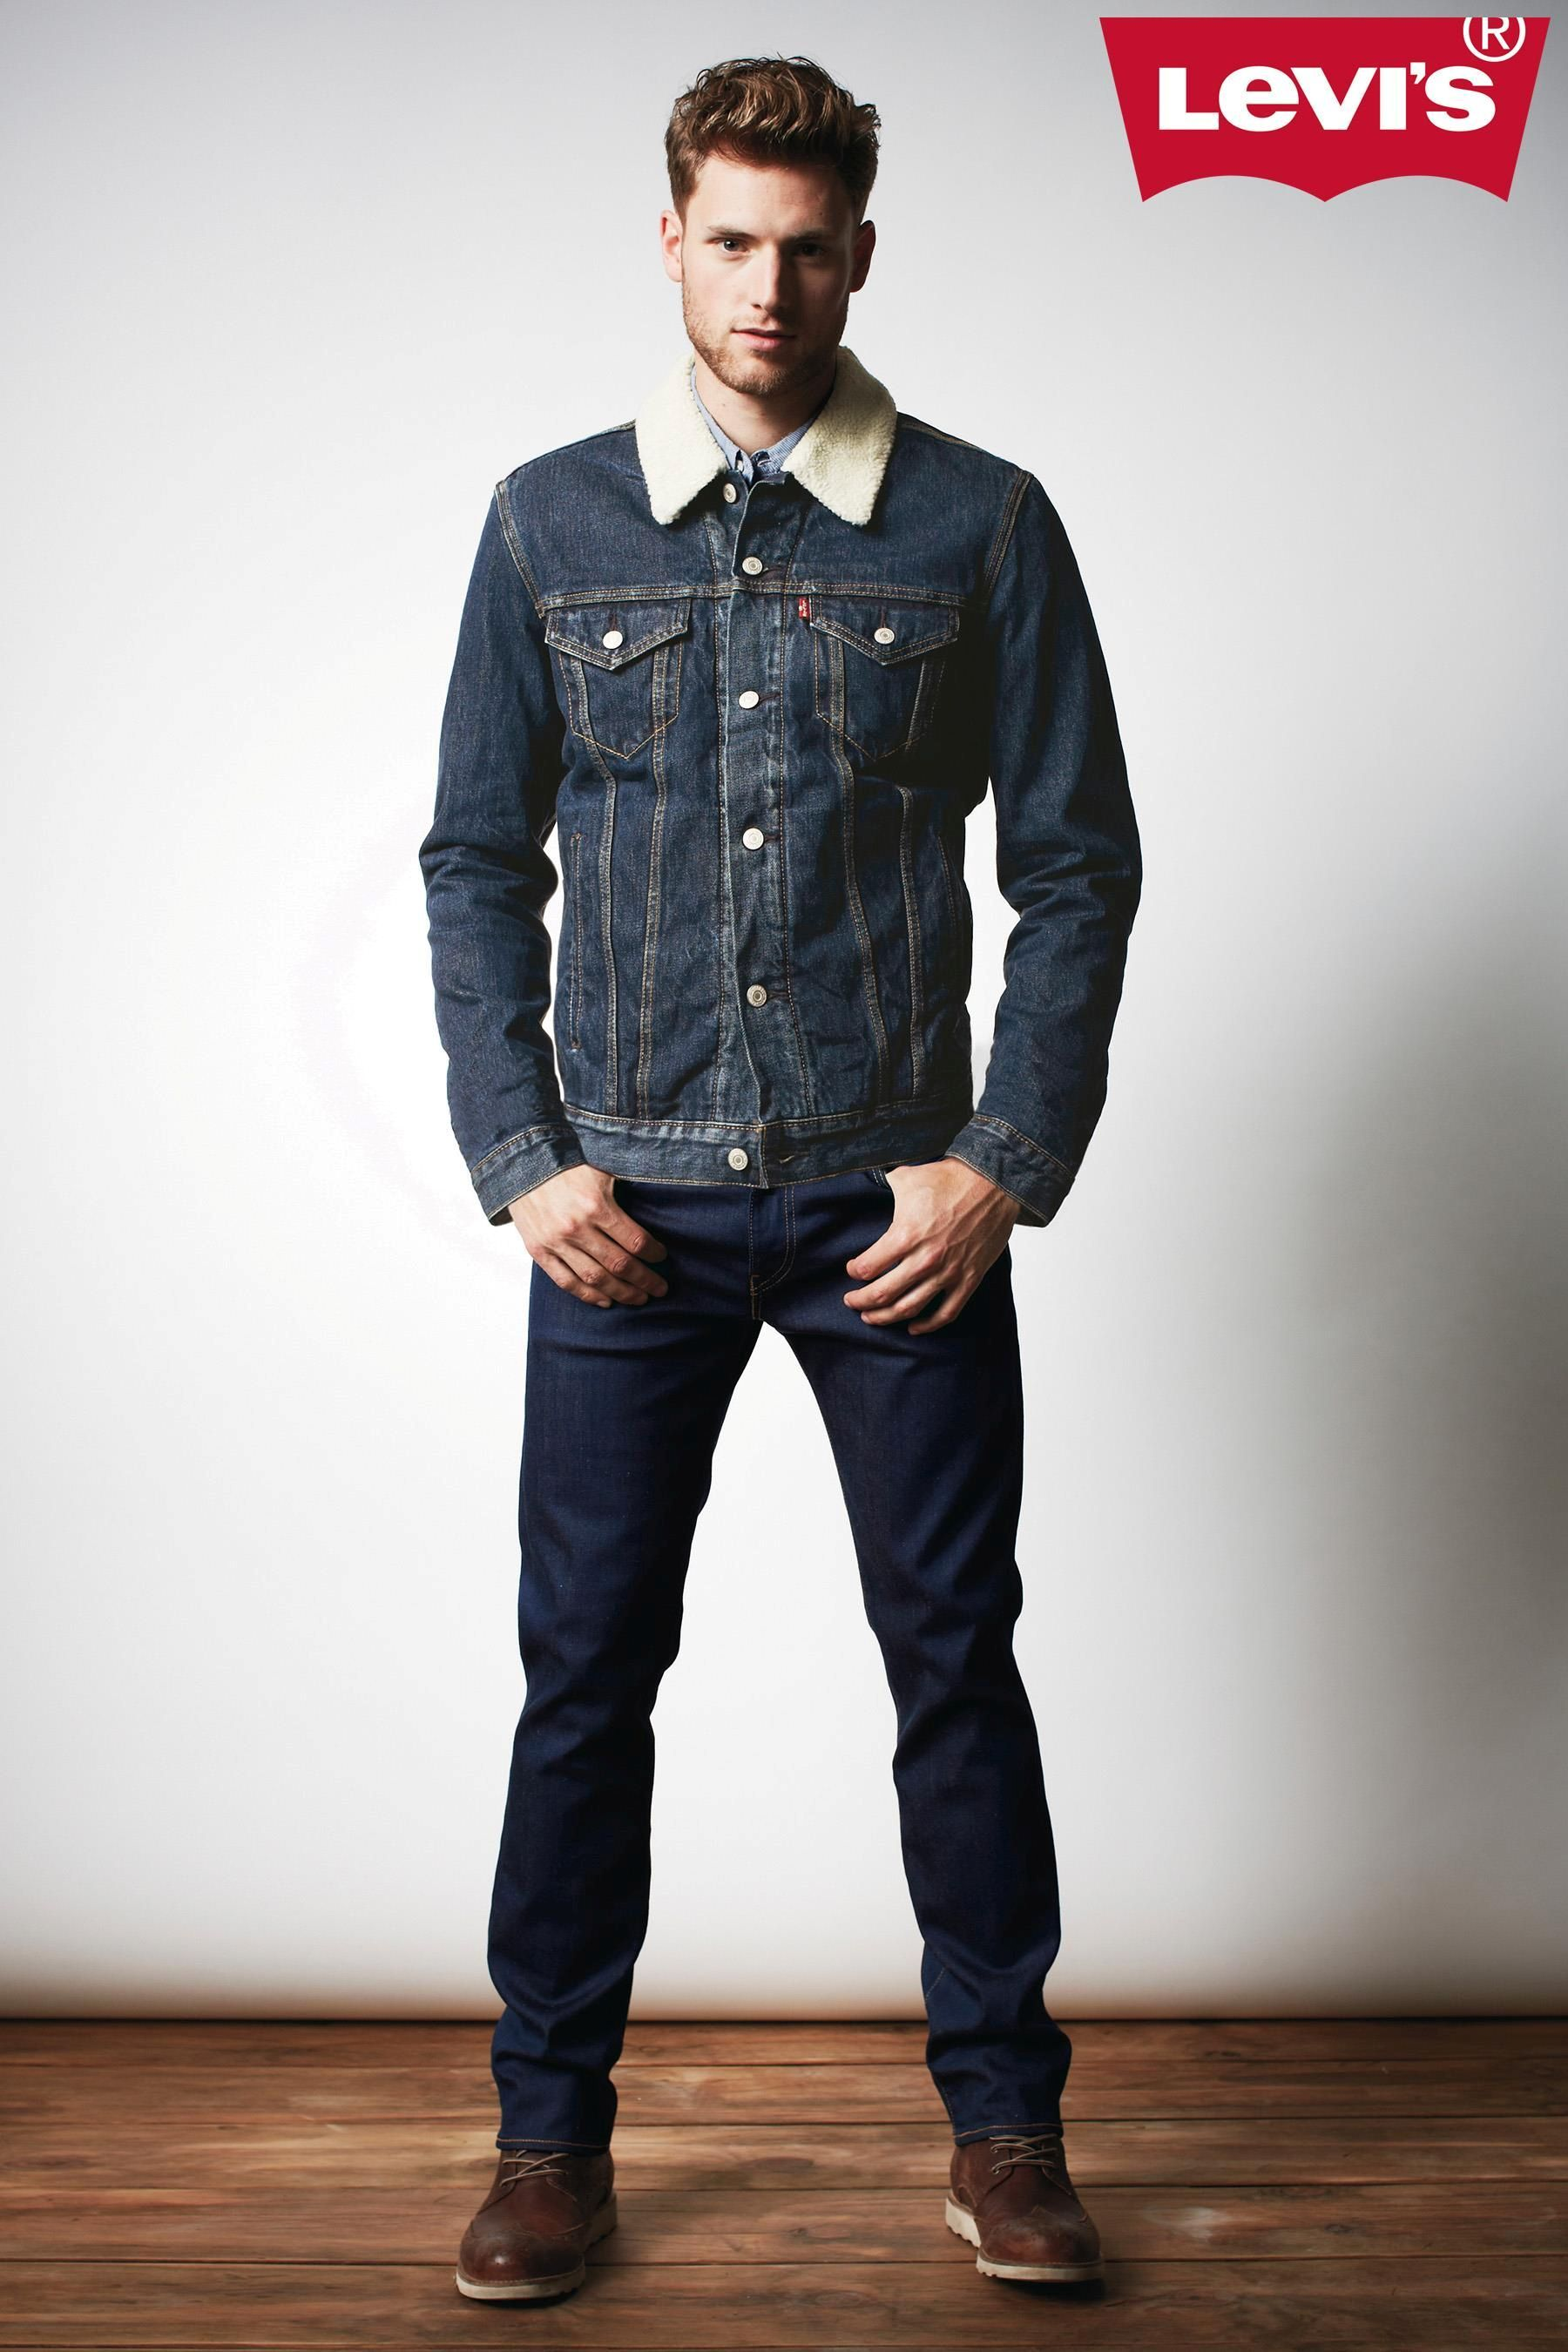 Levi S Sherpa Trucker Denim Jacket Levisbegifted My Style Pinterest Denim Jackets Man